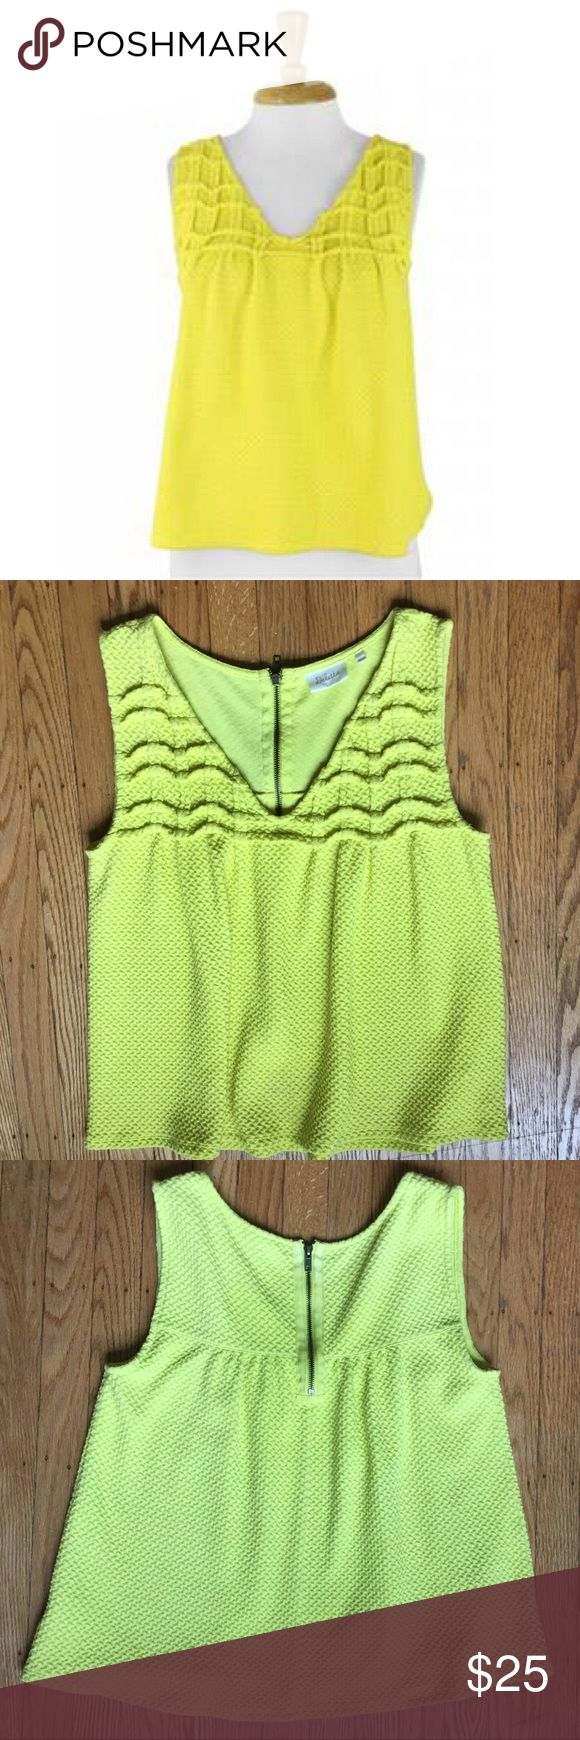 """Anthropologie Yellow Smocked Swing Tank Large Preowned in Excellent Condition! Textured Vibrant Yellow with Functioning back Zipper  Perfect with a Crossbody, Light WashHigh Waist Skinnys and  a Neutral Shoe❤️Size Large. Bust 40"""" Length 24"""" cotton poly blend Thank You! A Sunny Yellow for Sunny Summer Days Anthropologie Tops Tank Tops"""